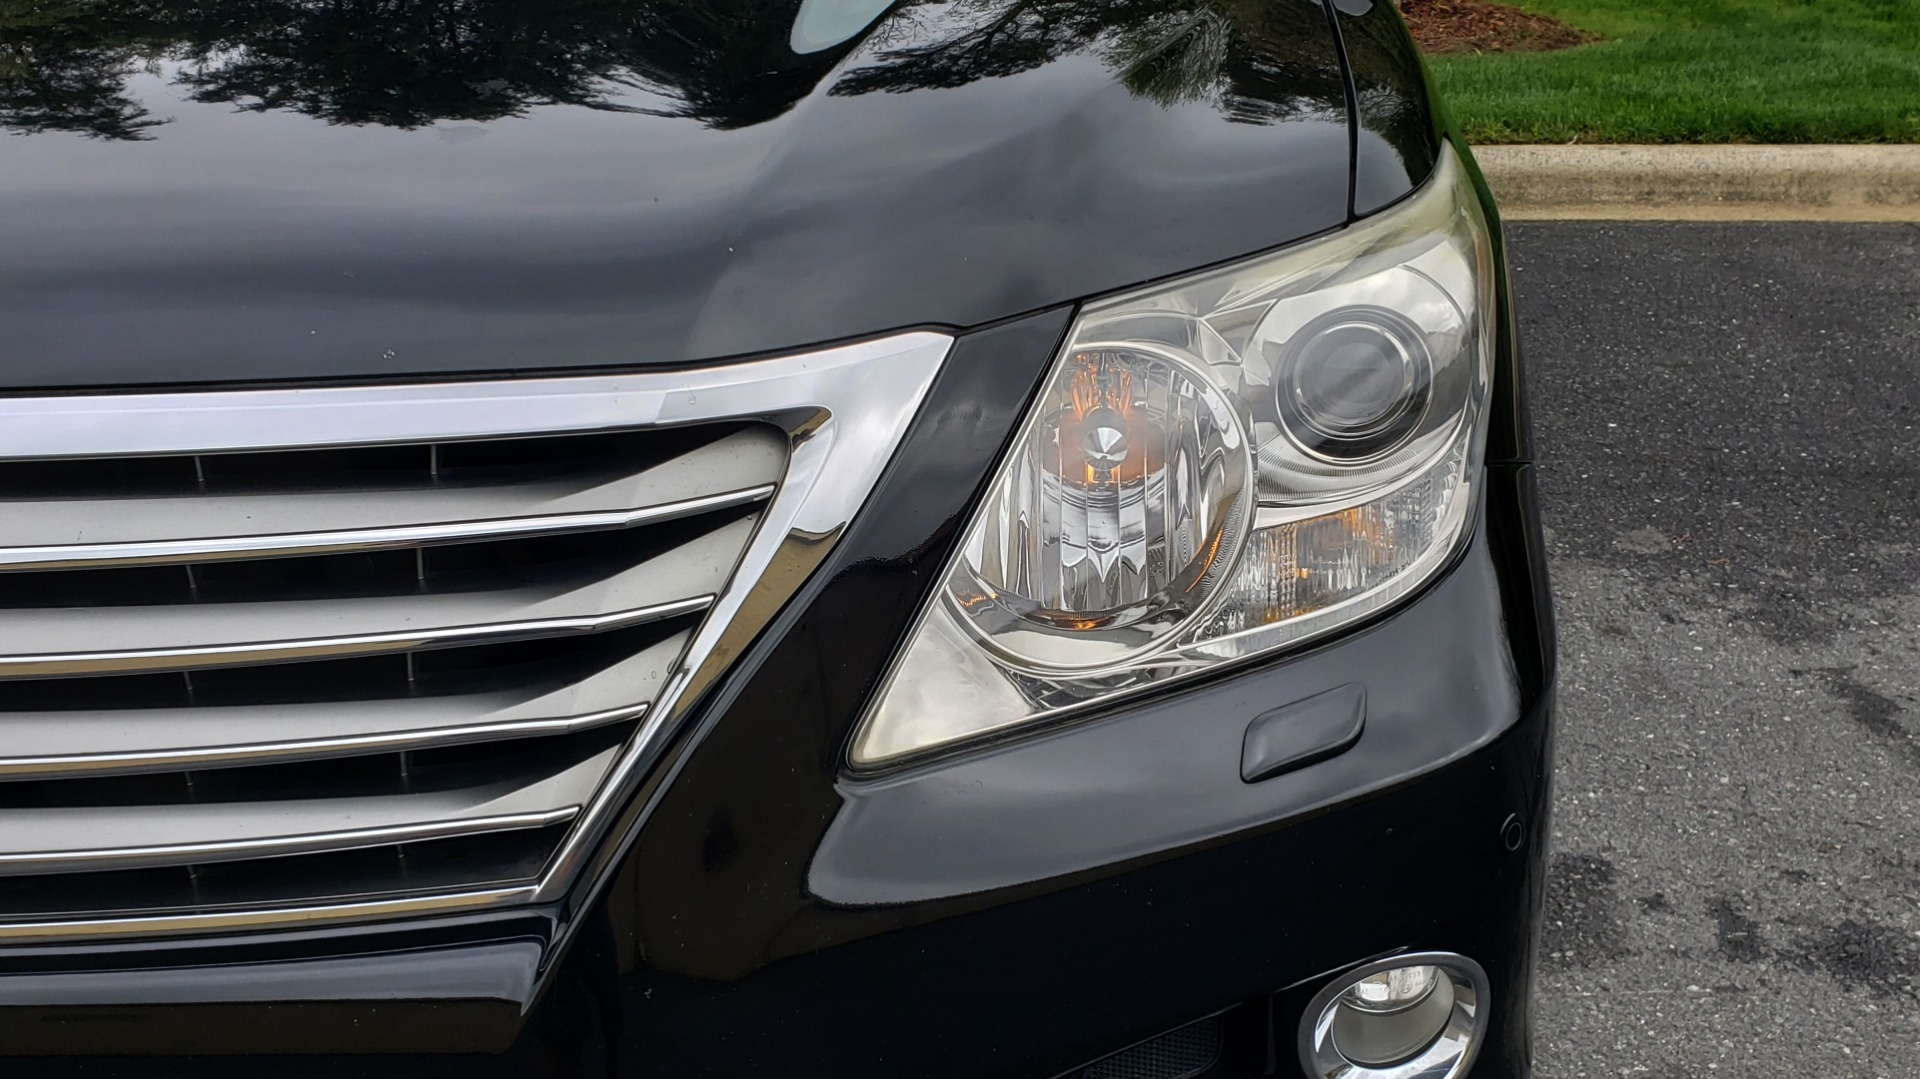 Used 2008 Lexus LX 570 4WD / TECH PKG / NAV / SUNROOF / MARK LEVINSON / PARK ASST for sale $22,995 at Formula Imports in Charlotte NC 28227 22